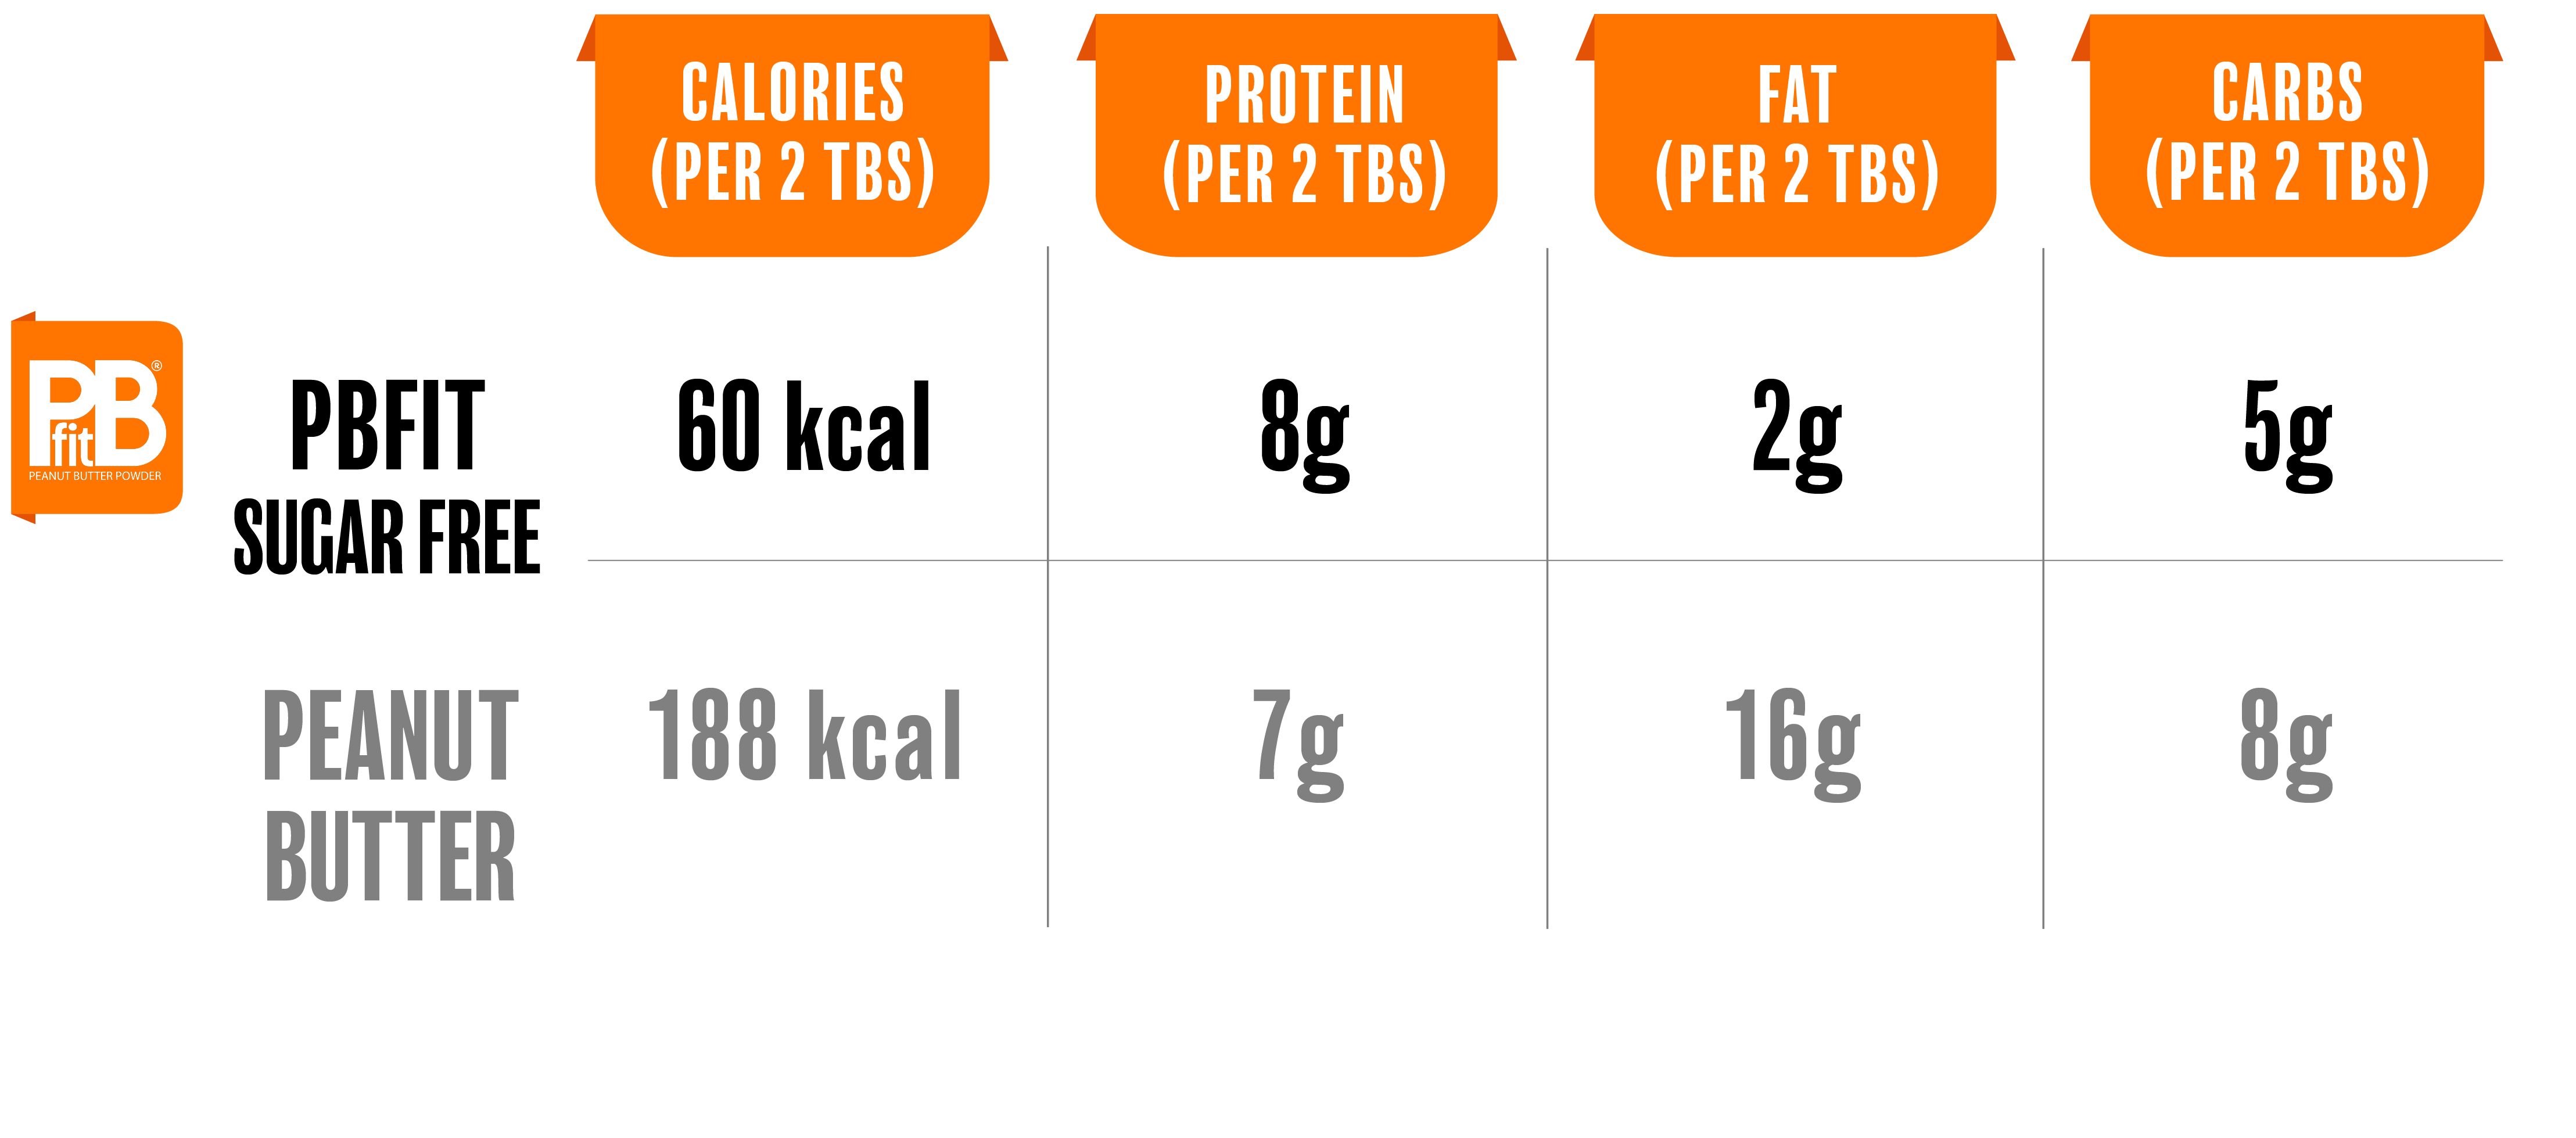 Peanut butter vs PBfit sugar free